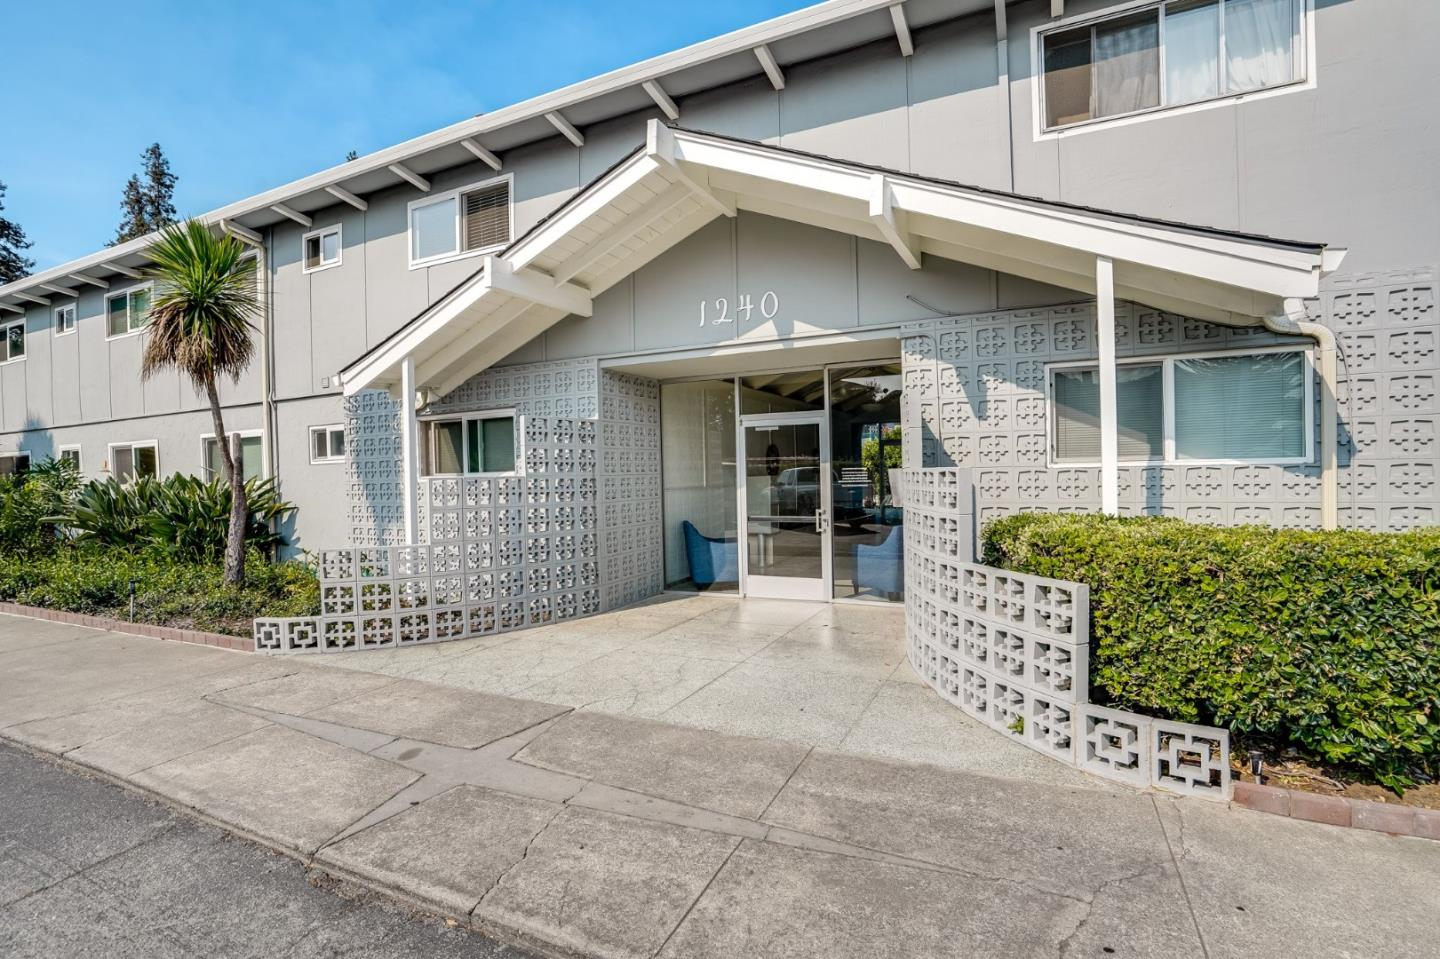 What a find! Excellent price point in prime Redwood City location! This move-in-ready, top floor light filled 2 bedroom 2 bath beauty is in the best location of the complex w/ no one below & tree views out of both bedrooms. Features include: beautifully remodeled kitchen w/ white soft close cabinetry, quartz countertops & all GE stainless steel appliances, spacious living room w/ fireplace opens to recently replaced entertainment deck for indoor/outdoor living & large master suite w/ walk-in closet. Other amenities include: tiled entry, laminate flooring, Pella dual paned windows, crown moulding, fresh paint & covered carport w/ 3 LG storage closets. Friendly complex is meticulously landscaped with pavered patios/pathways, lush vegetation, sparkling pool, sauna & club room too! Conveniently located close to Woodside Plaza, restaurants, shopping & Starbucks plus EZ commute w/ Caltrain. Low HOA dues include water, garbage, sewer & basic cable. Why rent when you can own a home like this?!